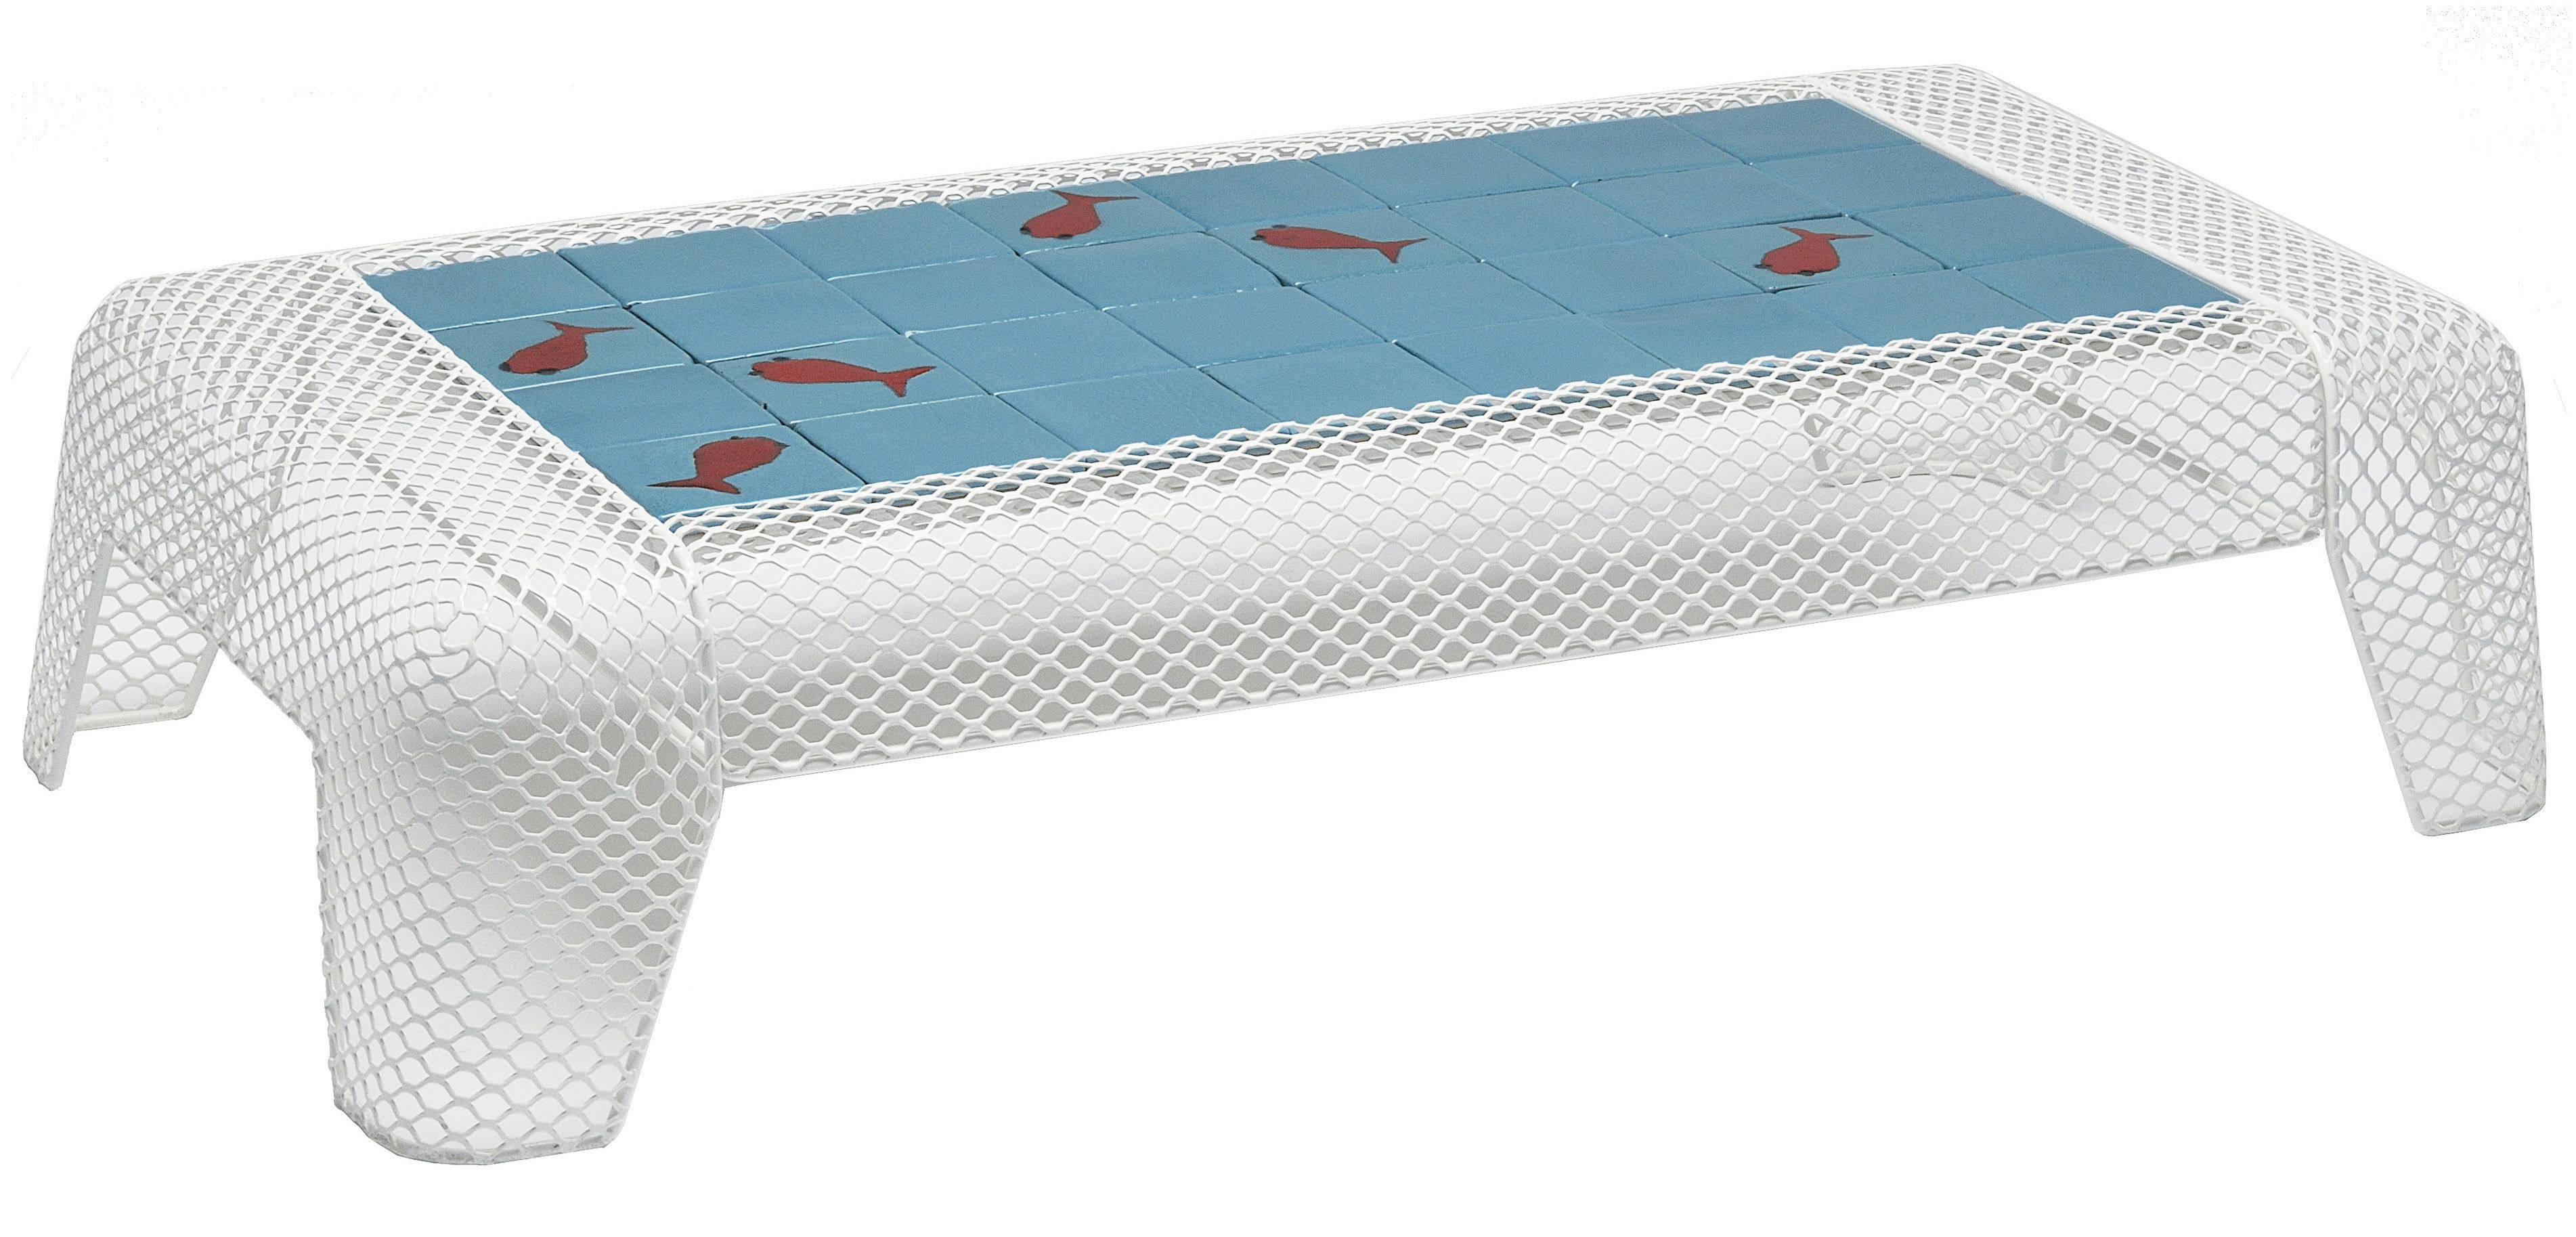 Ivy Coffee Table Ceramic Fish Pattern White Blue